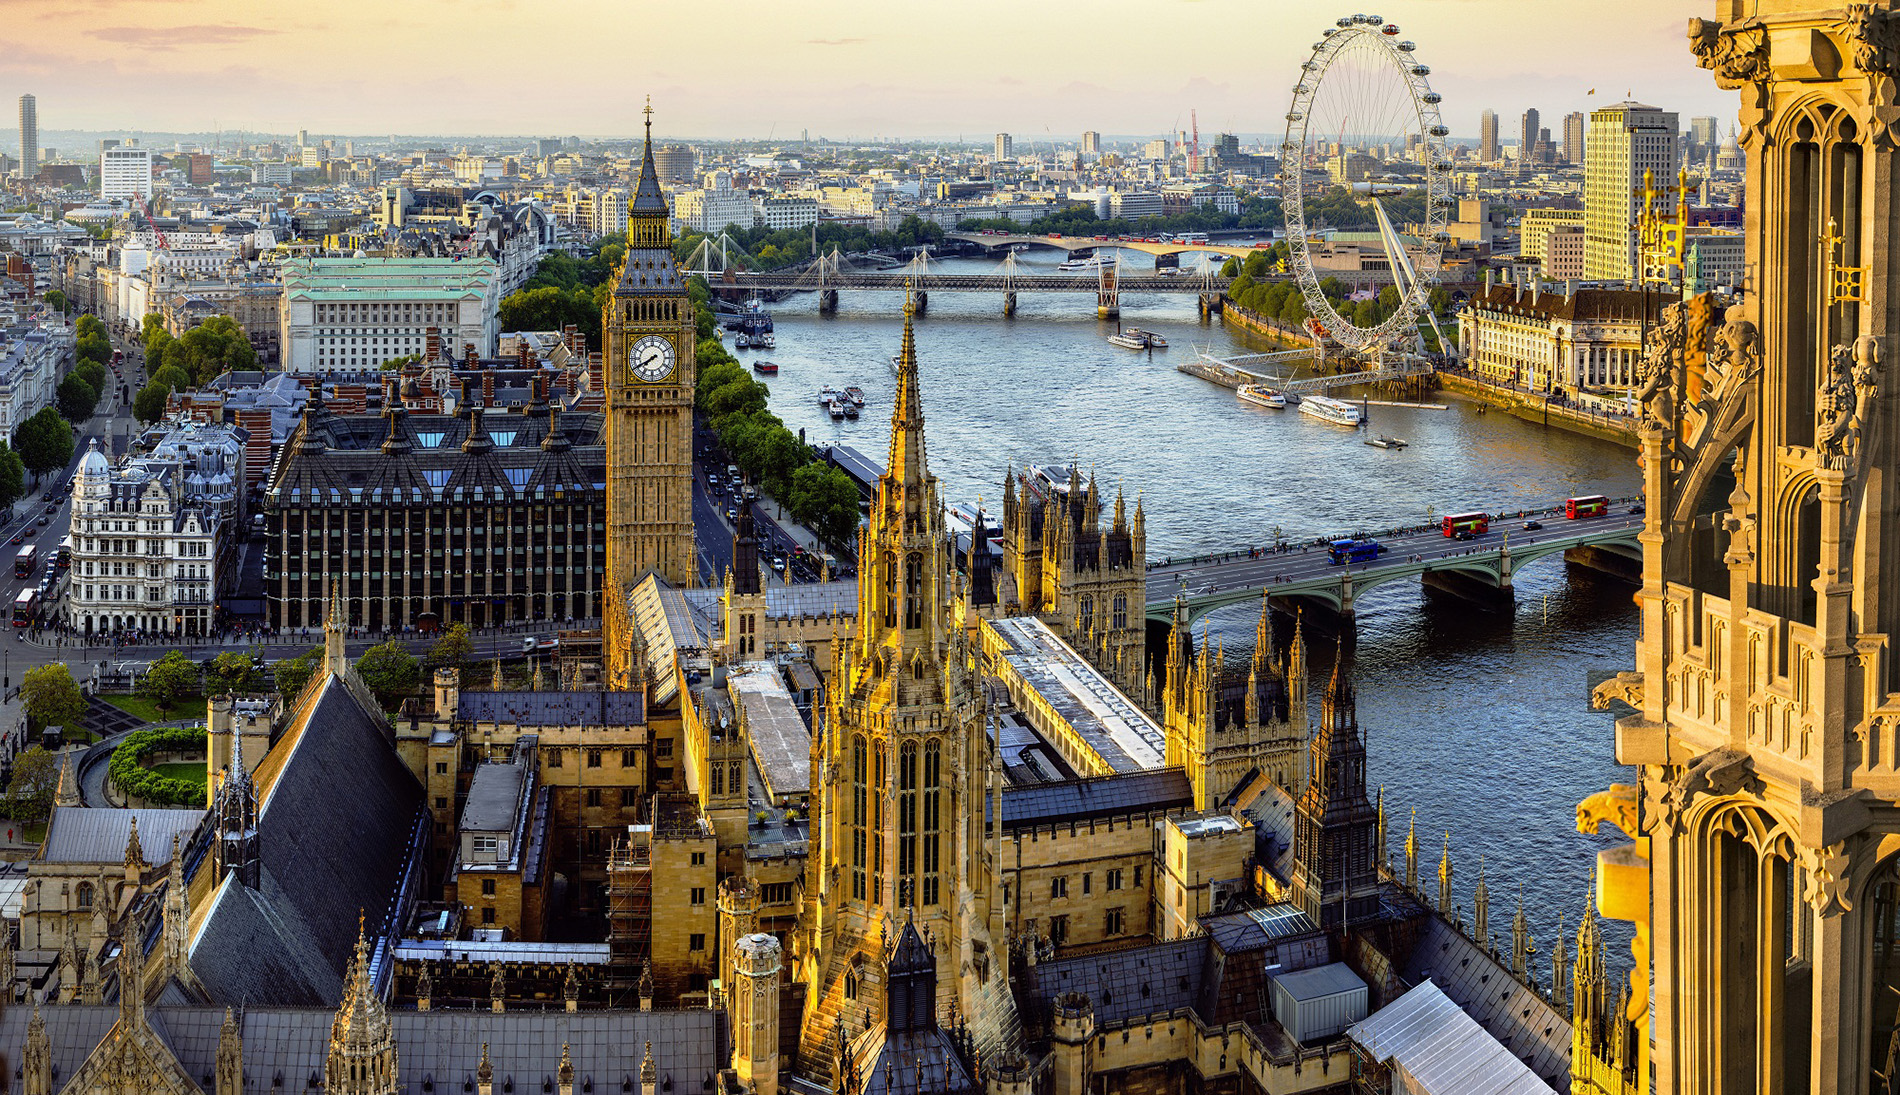 Skyline view of London, England featuring attractions like the millenium eye